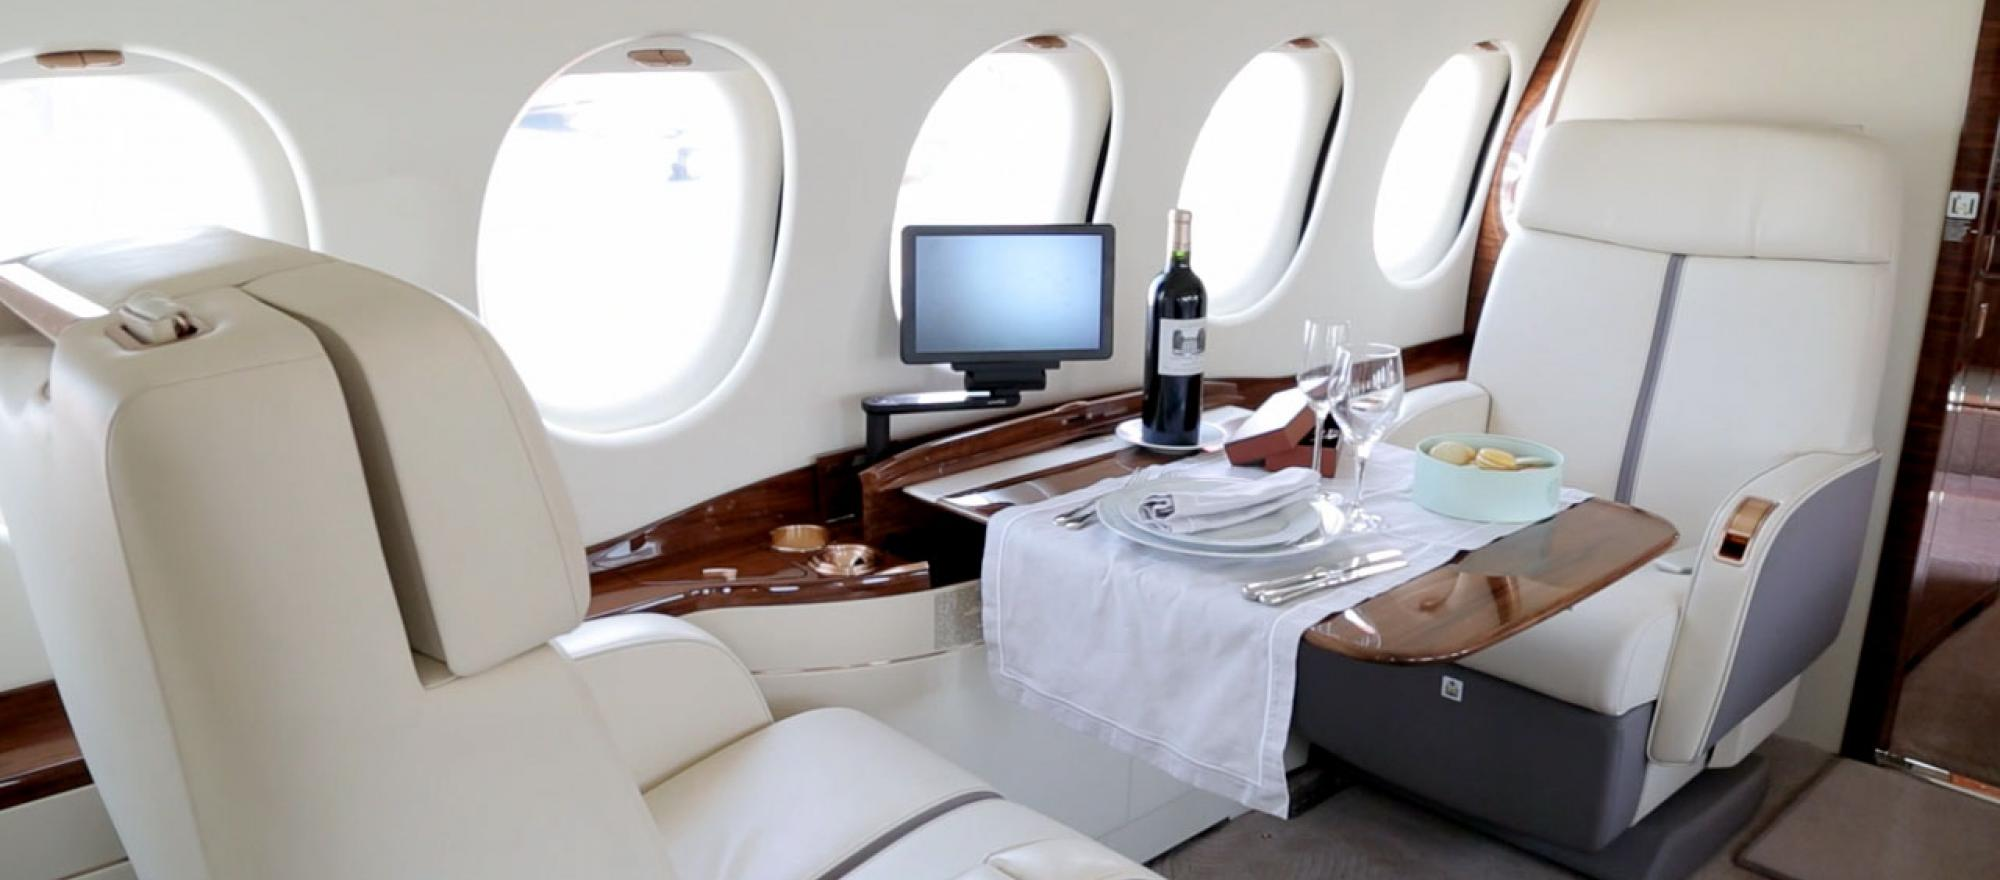 Luxury private jets for sale by brokers ... - JamesEdition